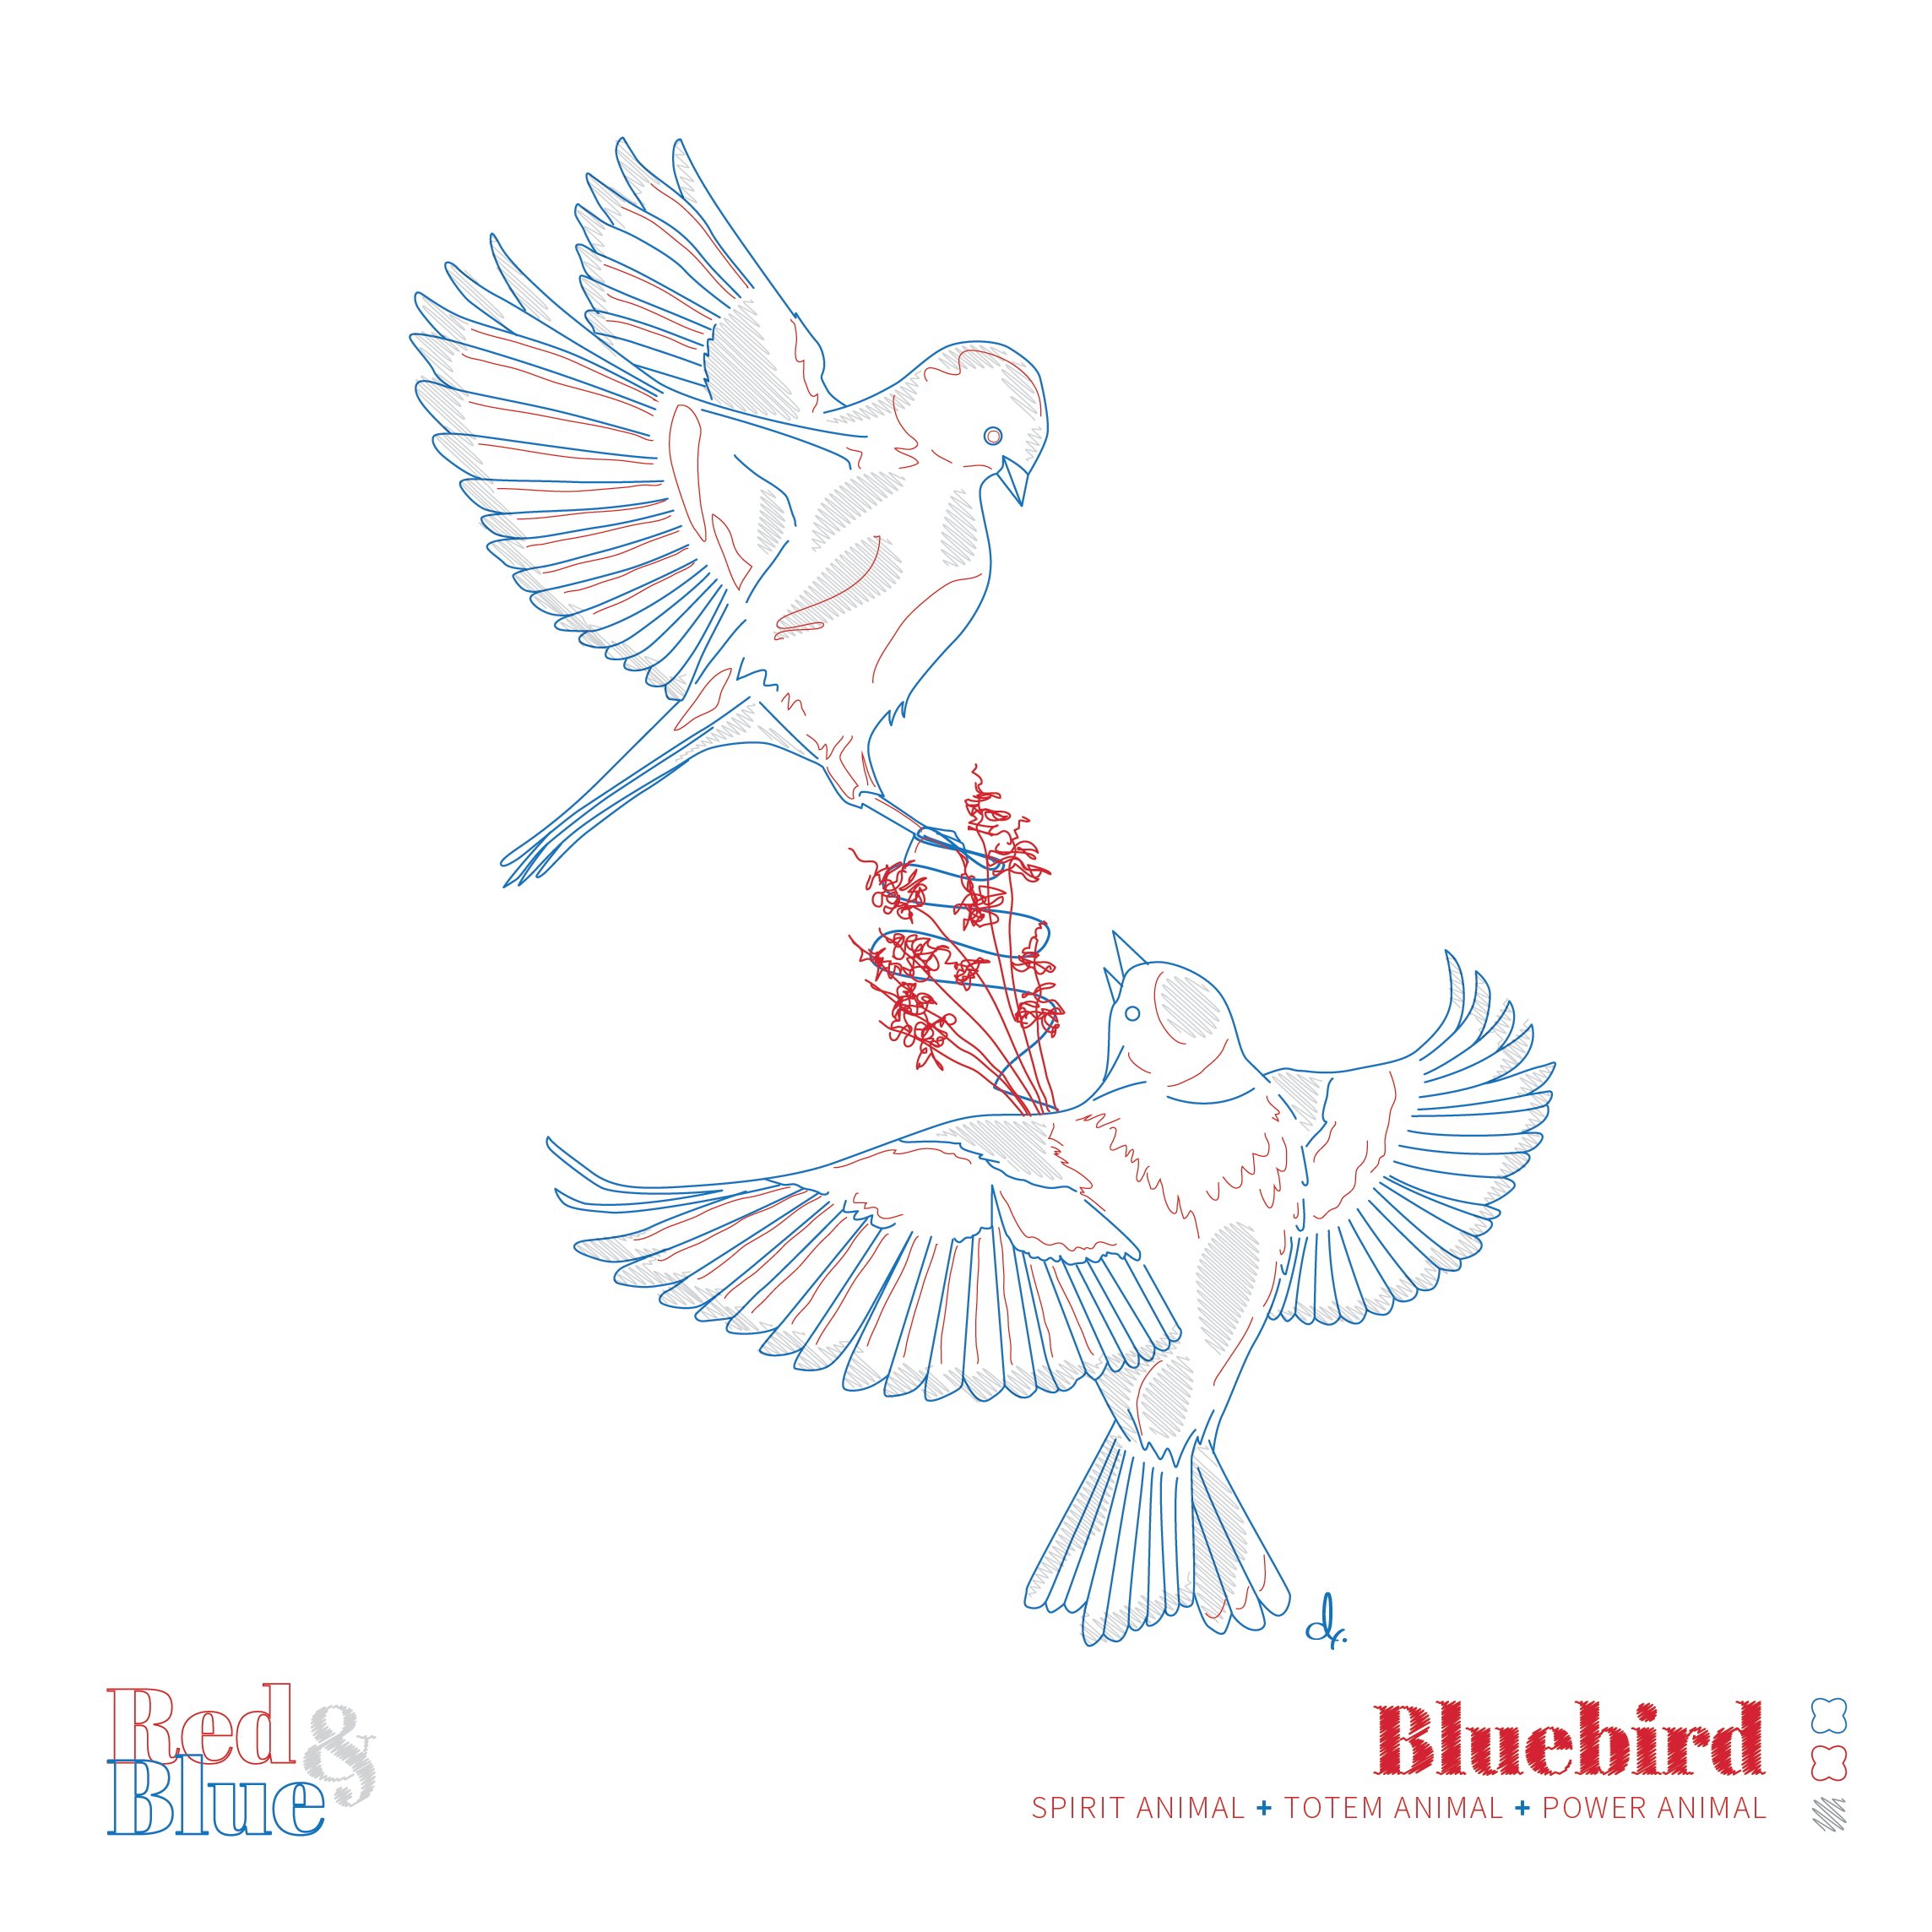 Bluebird Red and Blue Symbolism and Meaning